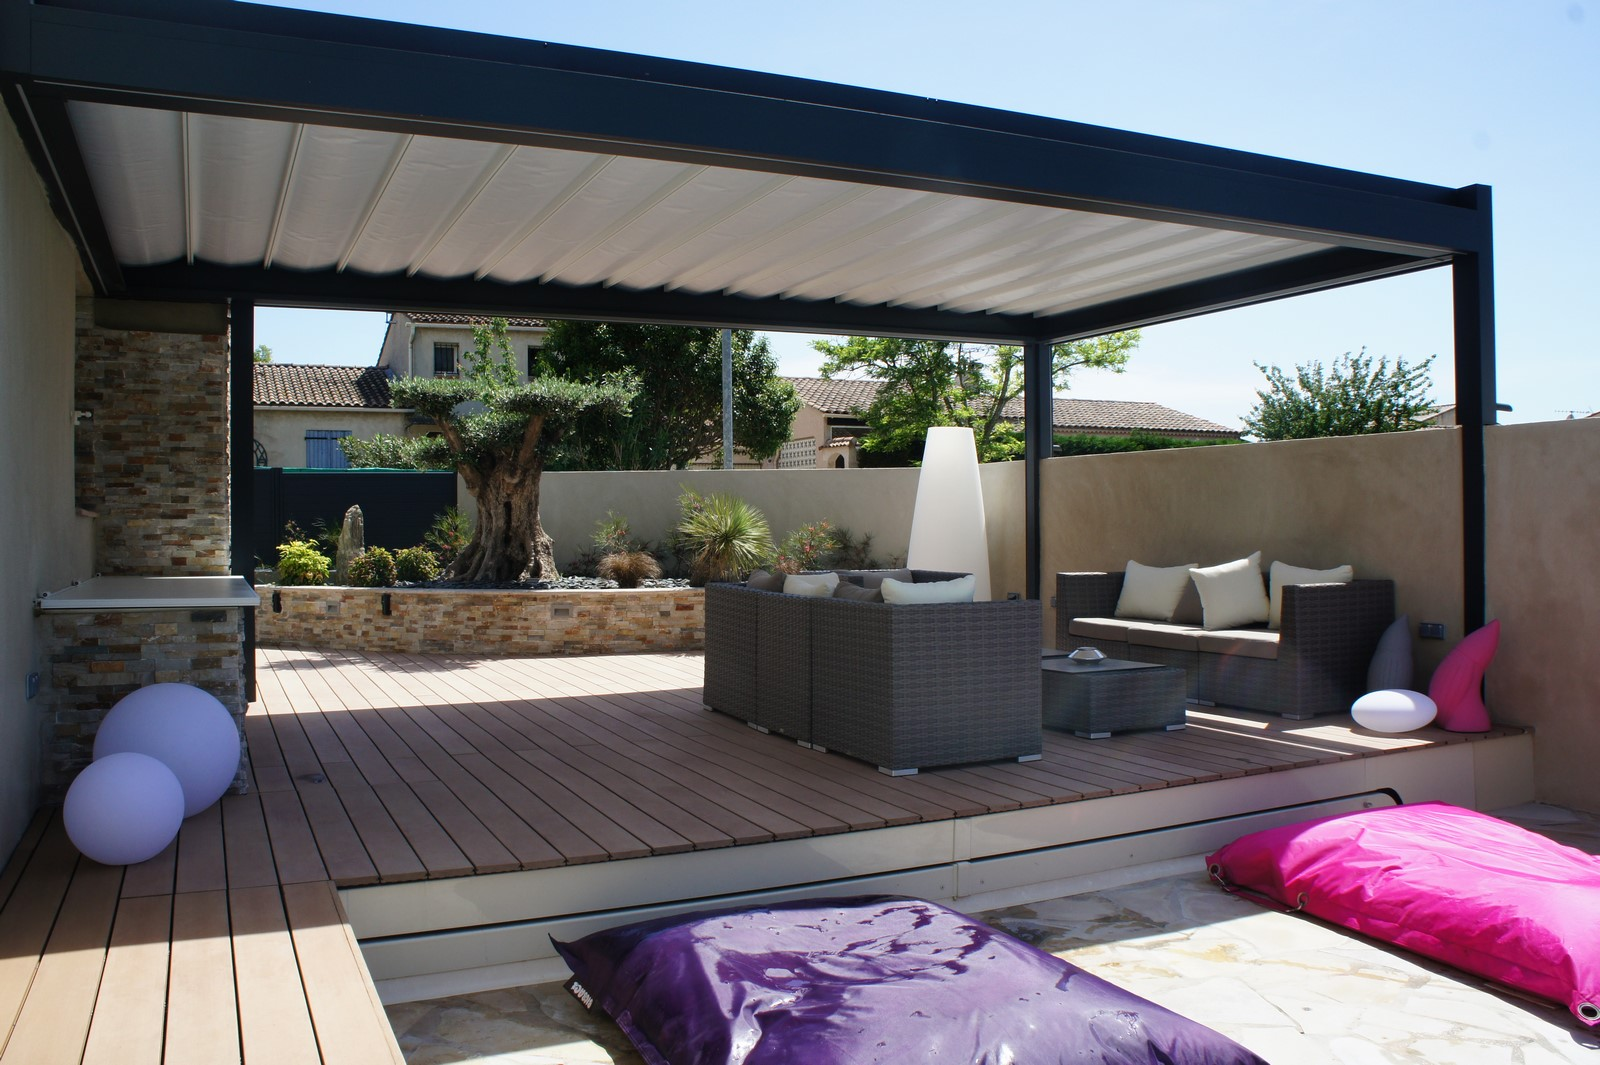 pergola toit retractable nouvelle pergola toit r tractable brustor flash info